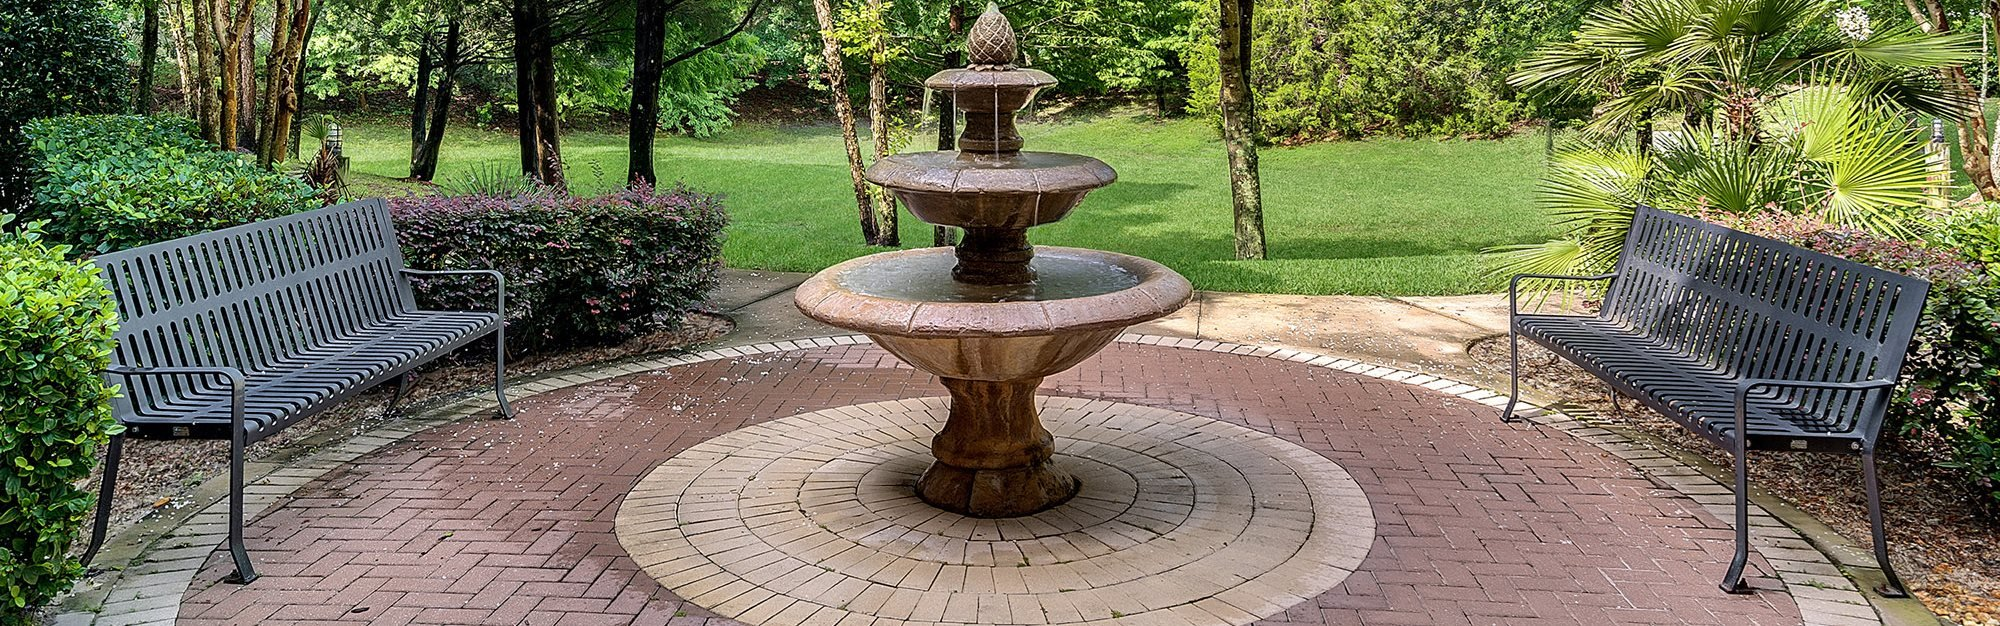 sitting area with fountain